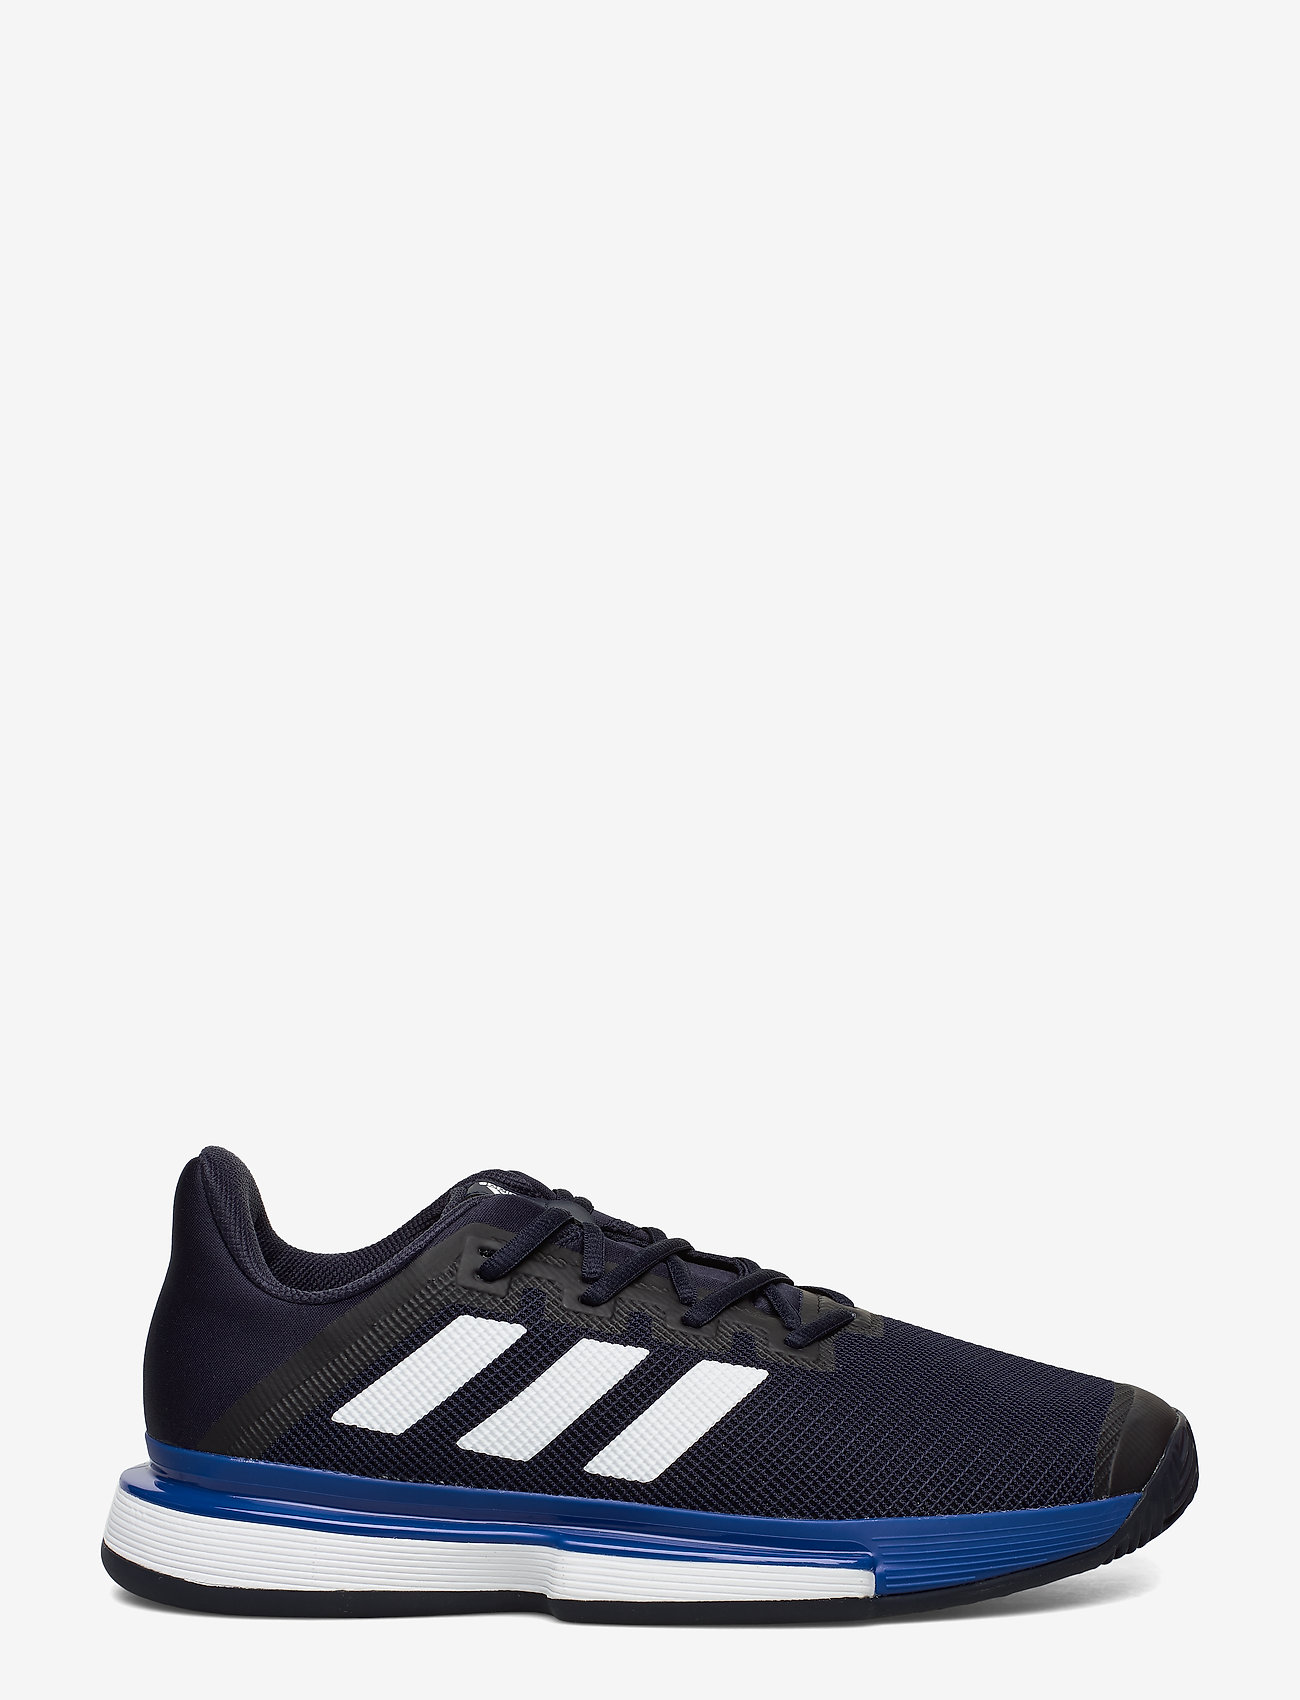 Solematch Bounce Clay Court Shoes (Legend Ink) (97.50 €) - adidas Performance KVjHe